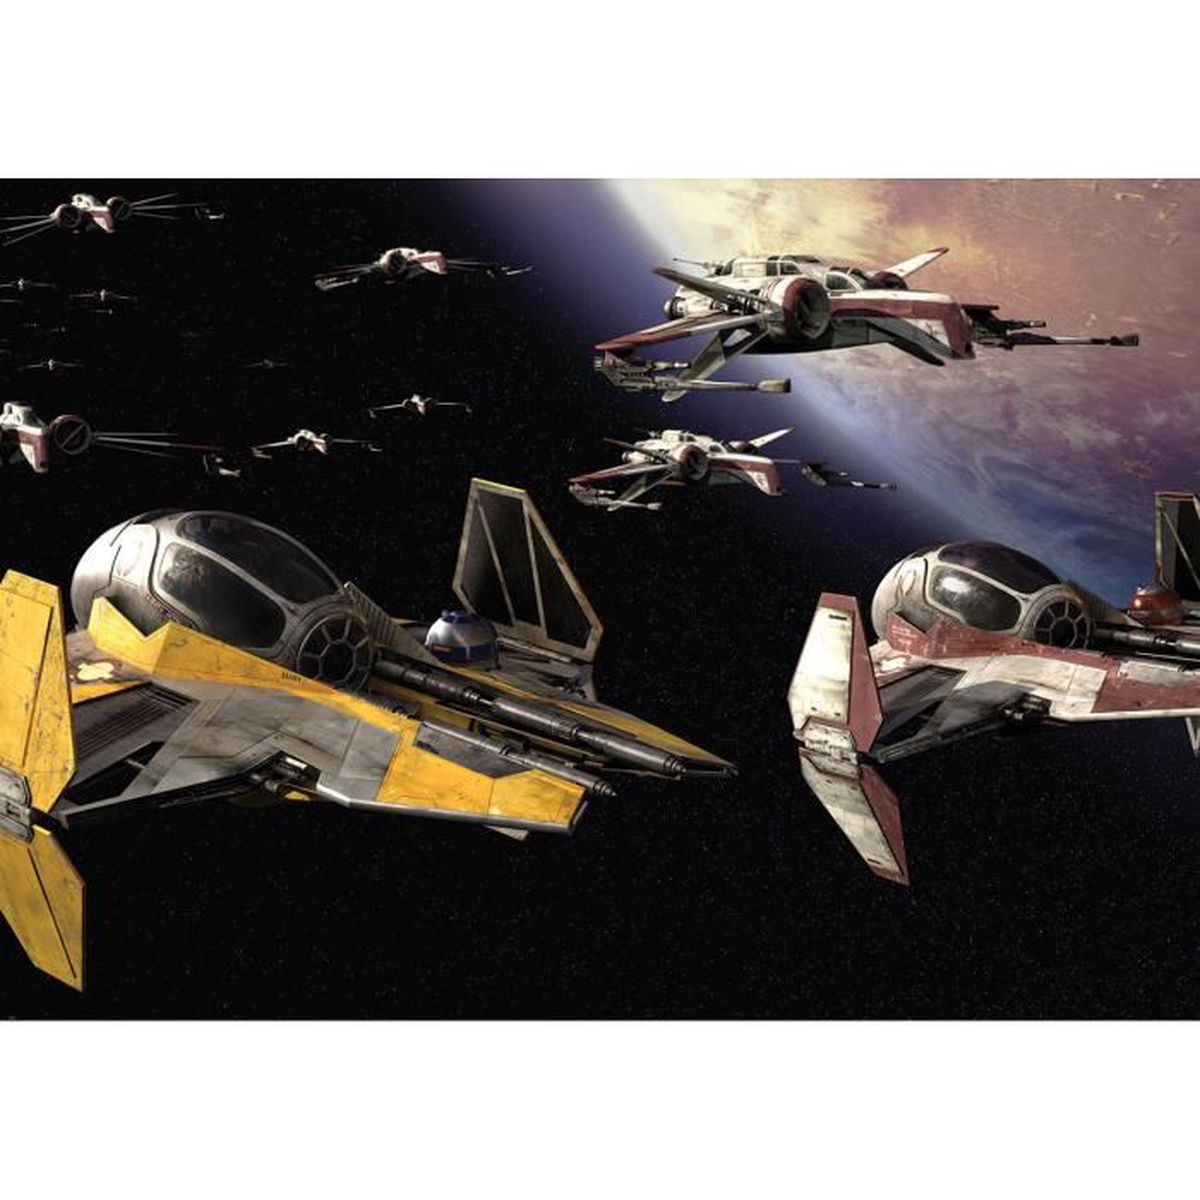 papier peint star wars 146 x 208 cm – fresque murale revenge of the